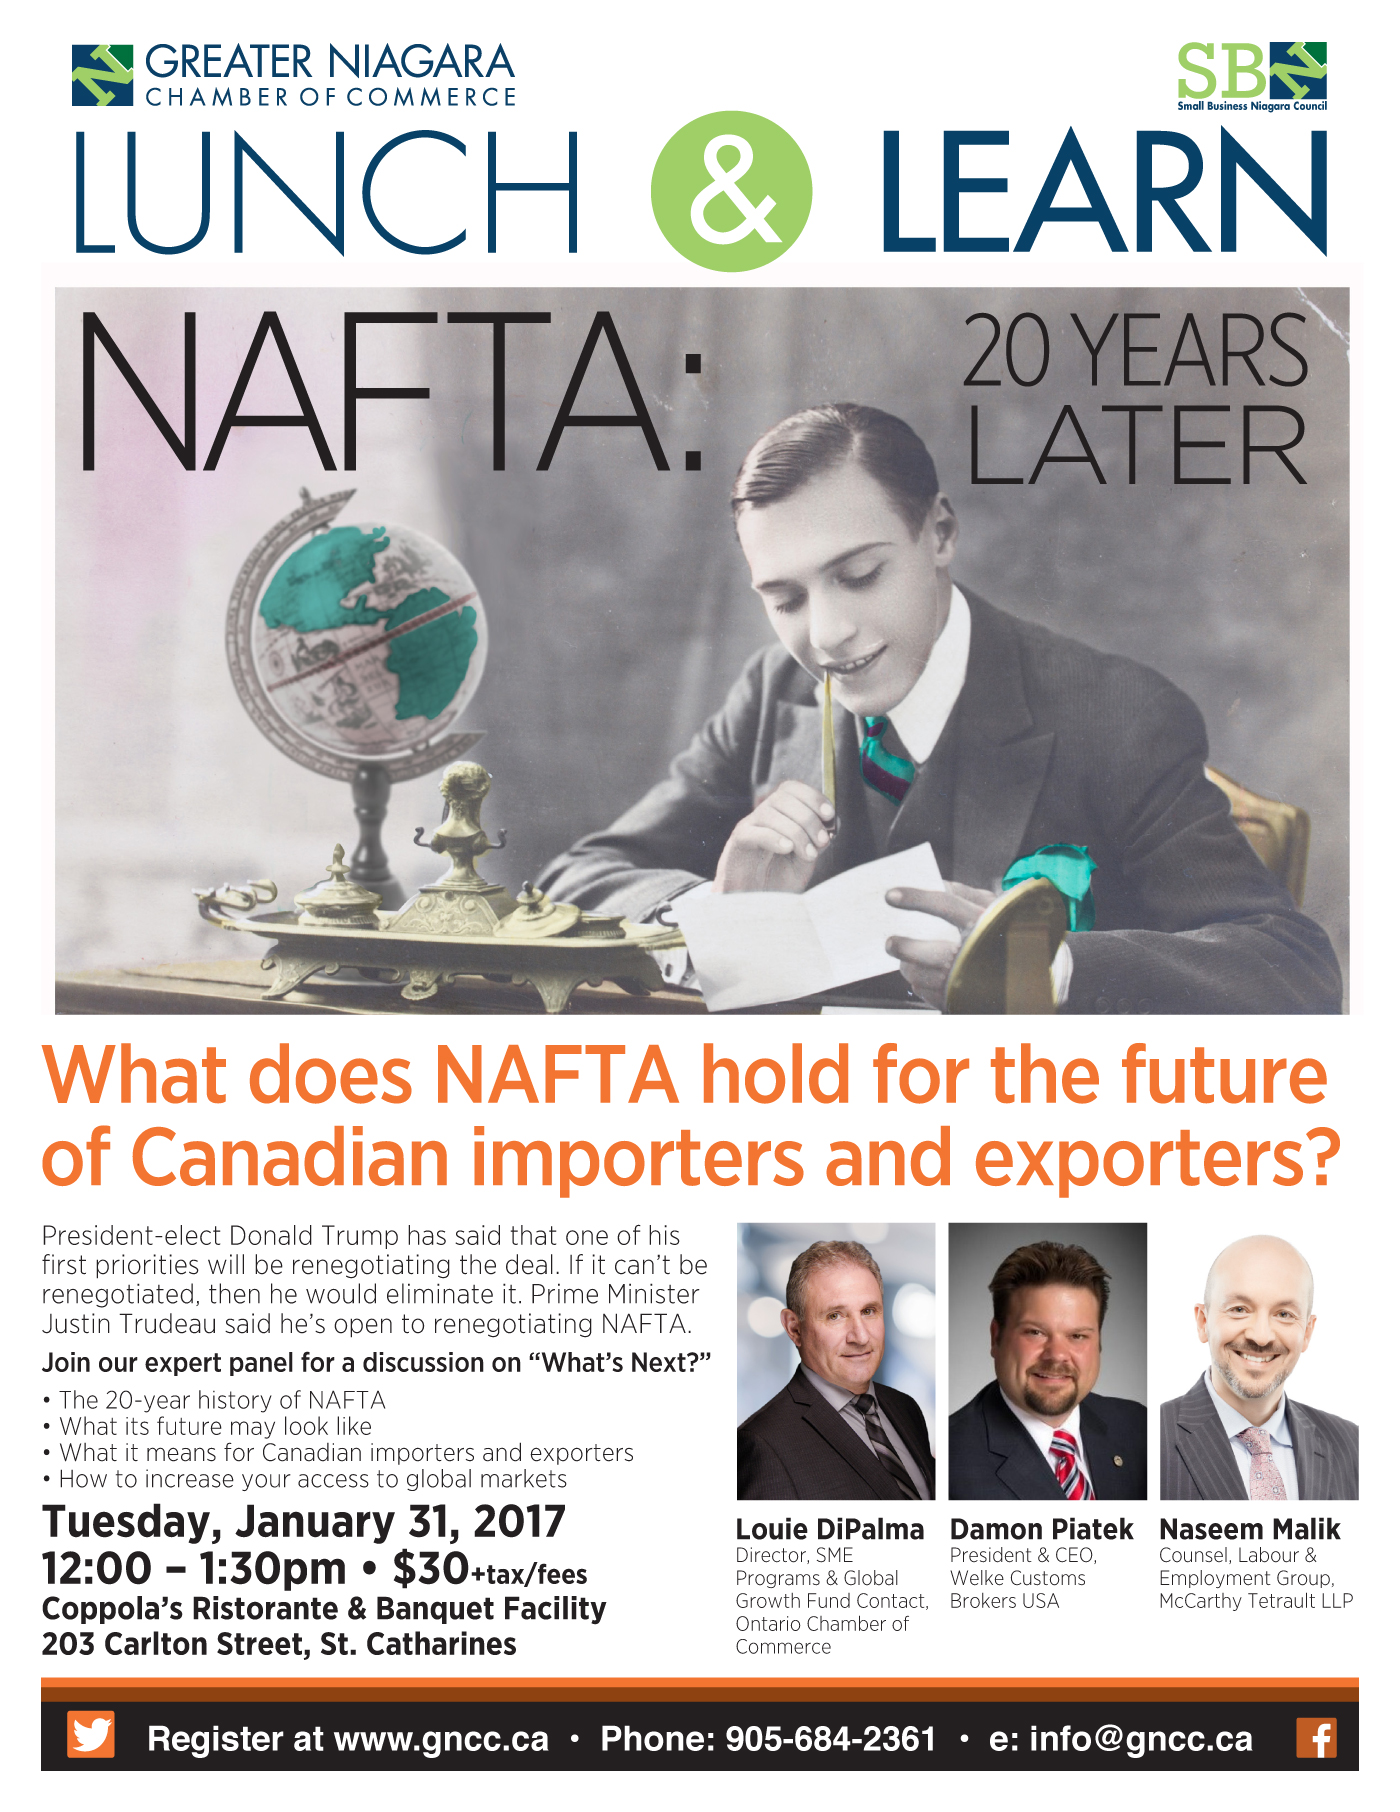 What does NAFTA hold for the future of Canadian importers and exporters?